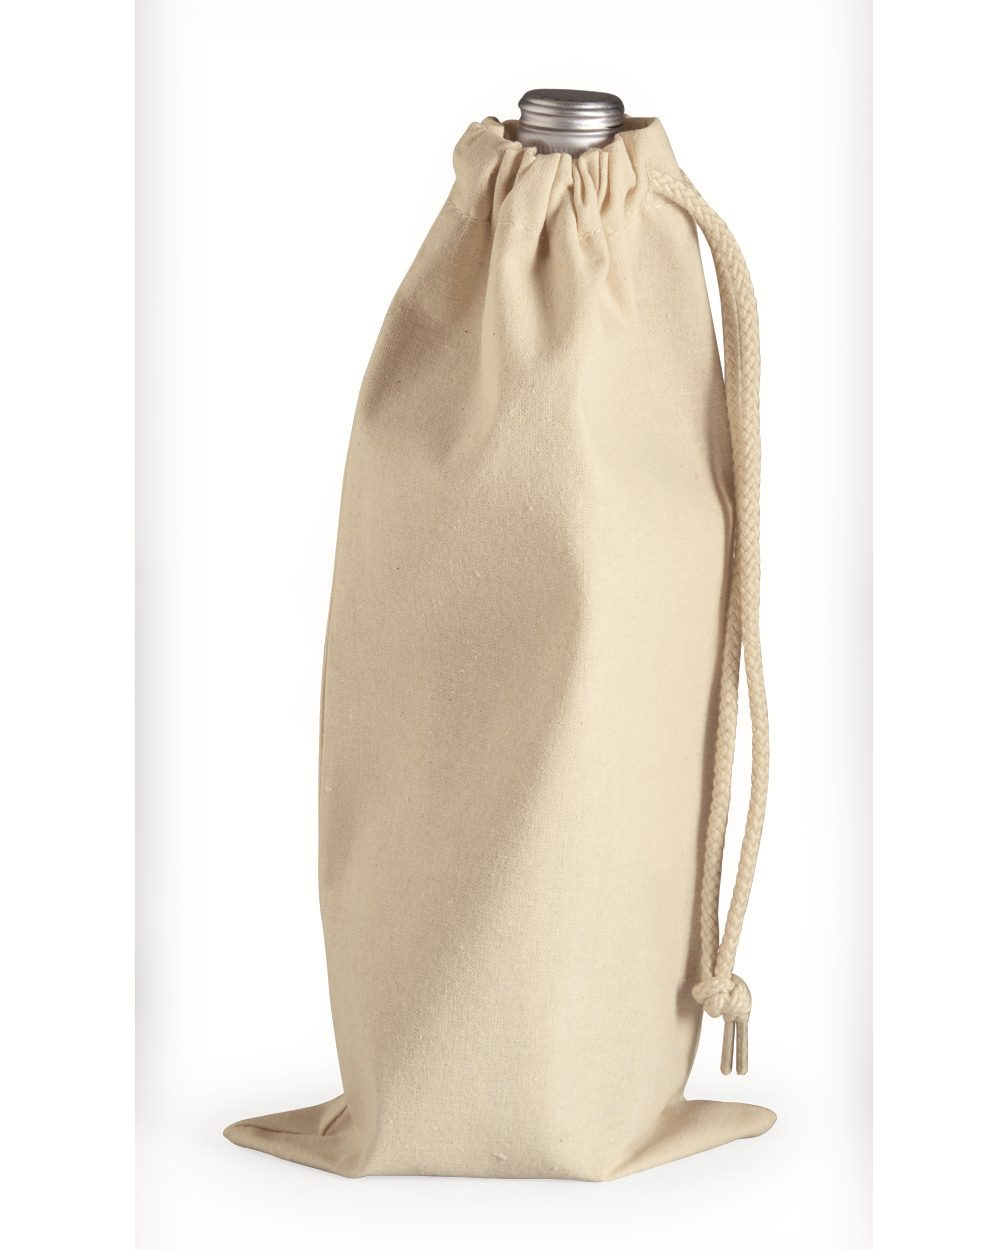 Liberty Bags Drawstring Wine Bag - 1727